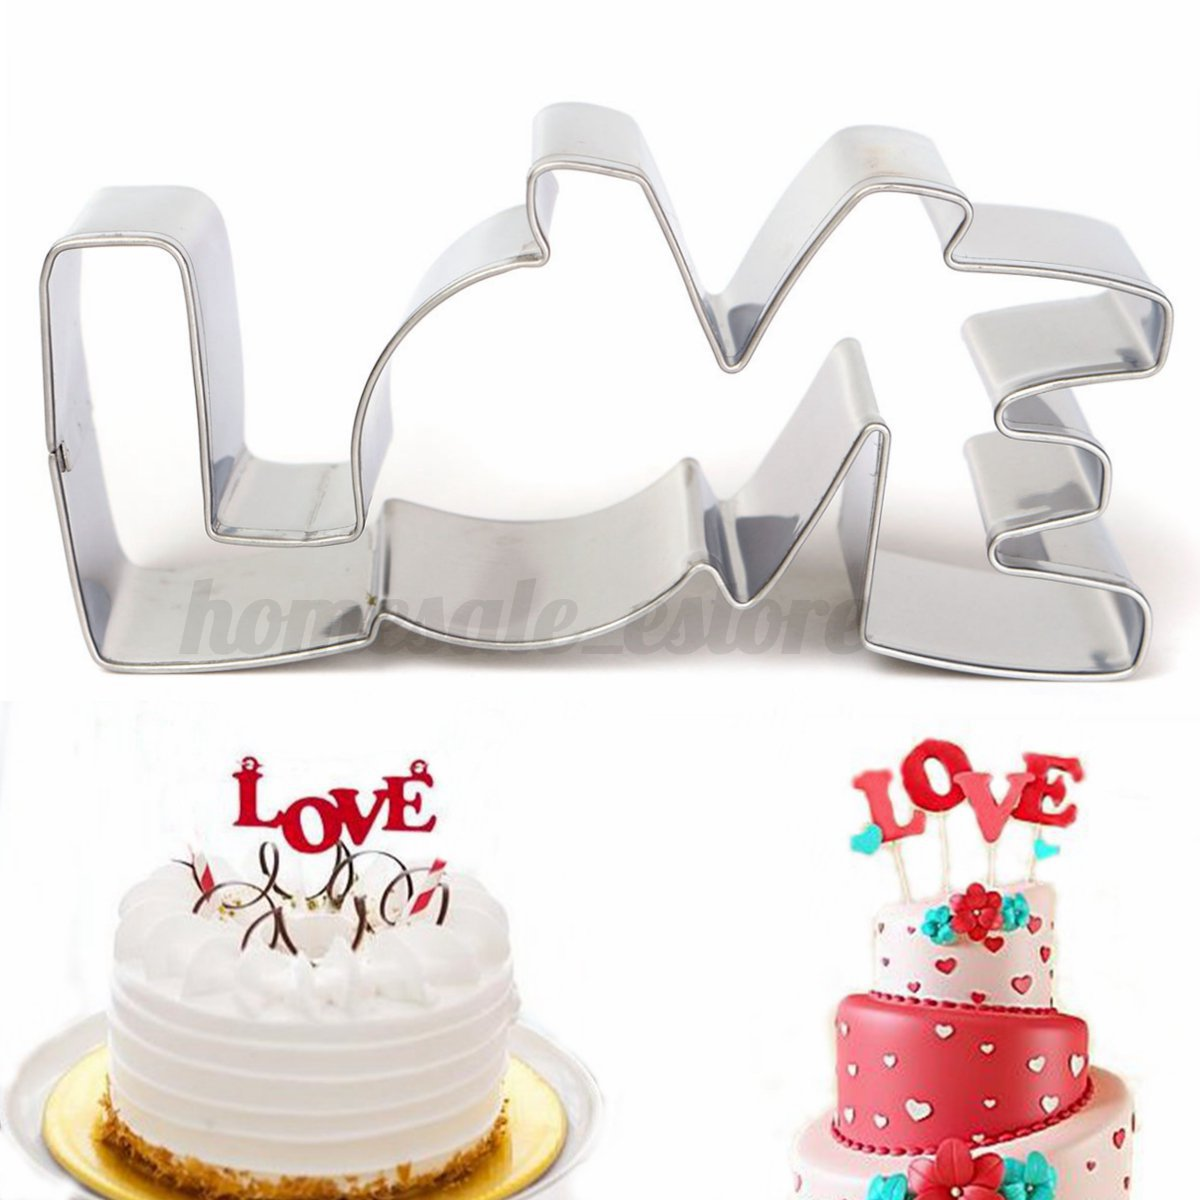 Stainless Steel Fondant Biscuit Cookie Pastry Mold Mould Cutter Cake Decorating